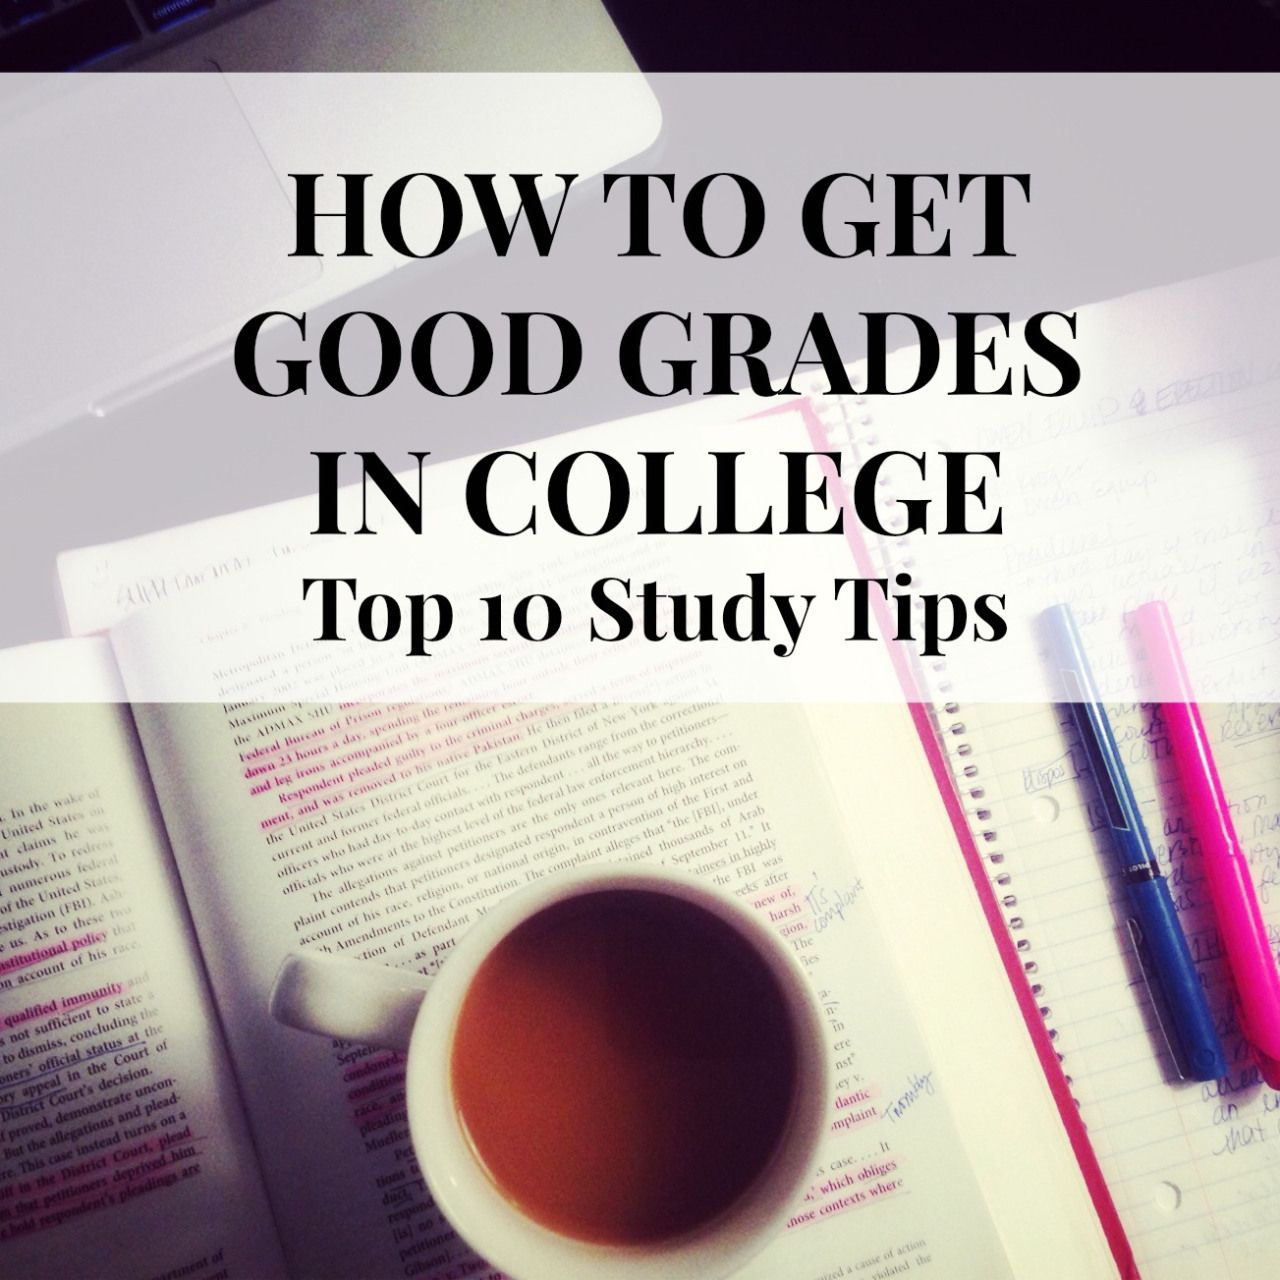 an analysis of college life Careful analysis of the habits of college students as they sit through lectures has revealed minimal similarities between the average student and the middle schoolers sitting behind them.